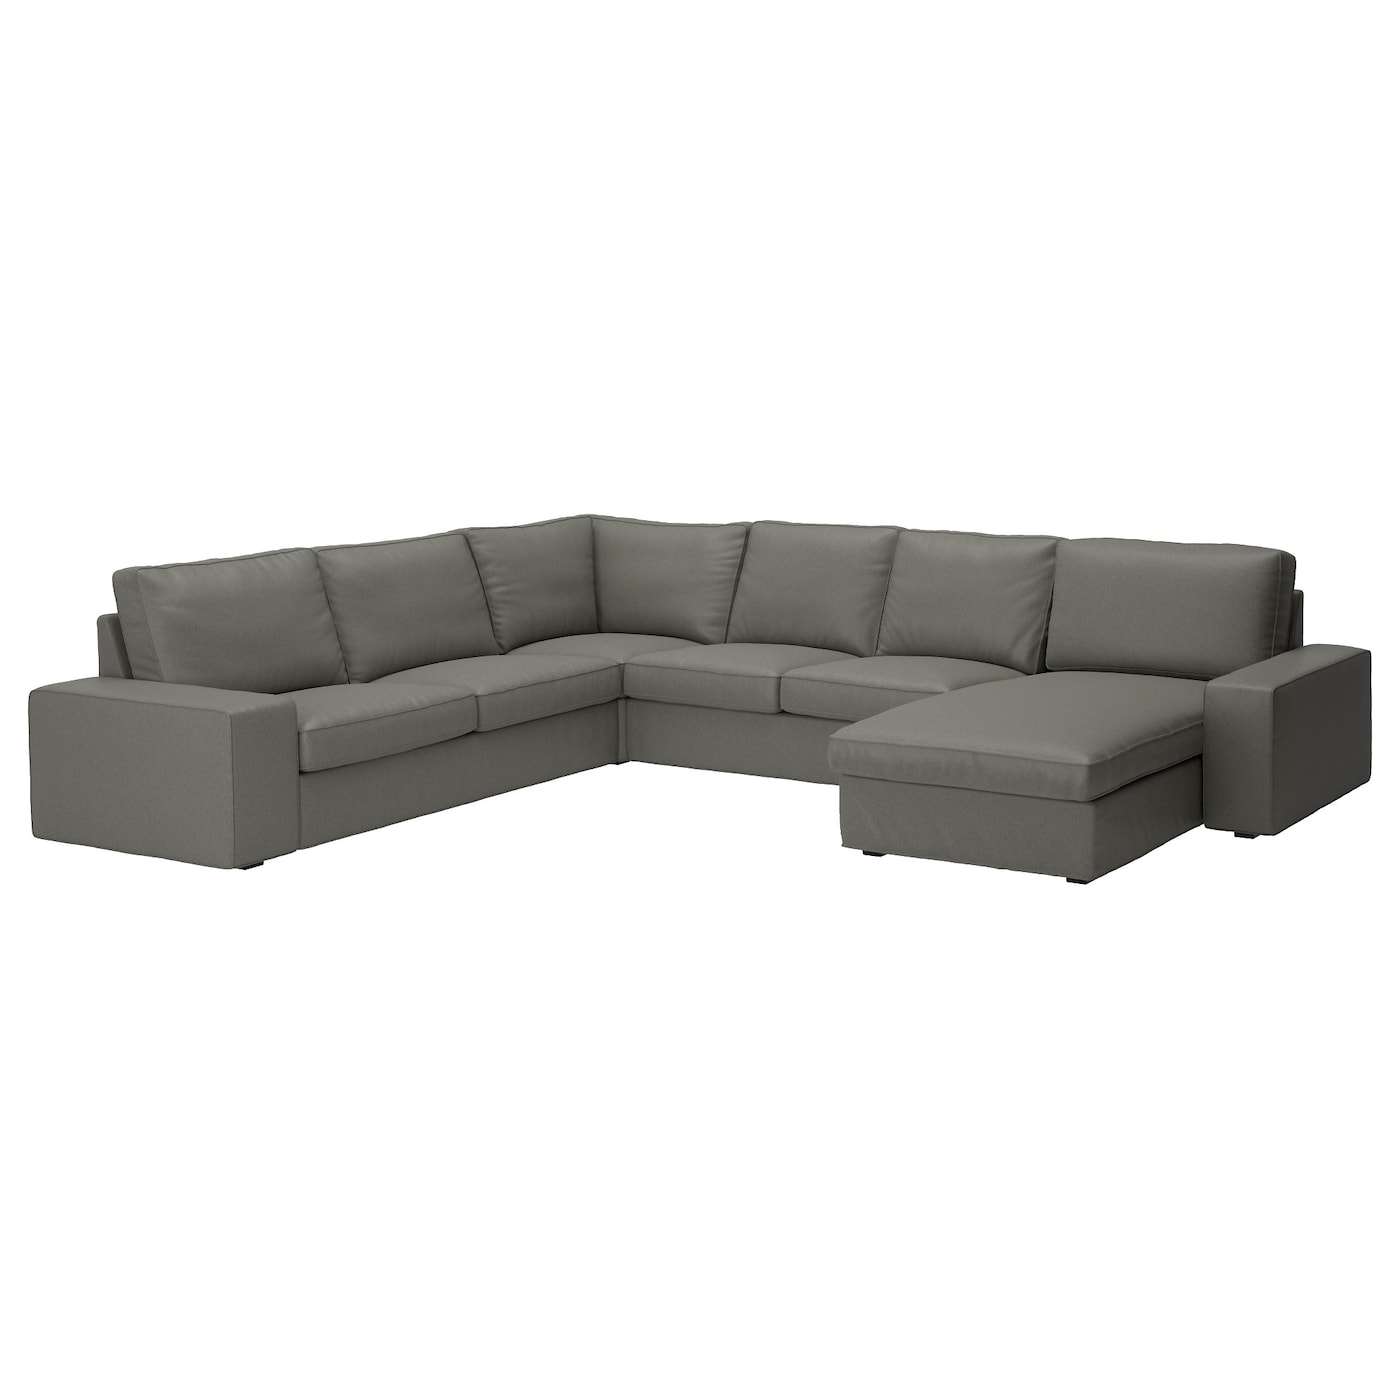 Kivik corner sofa 2 2 with chaise longue borred grey green for Chaise longue jardin ikea